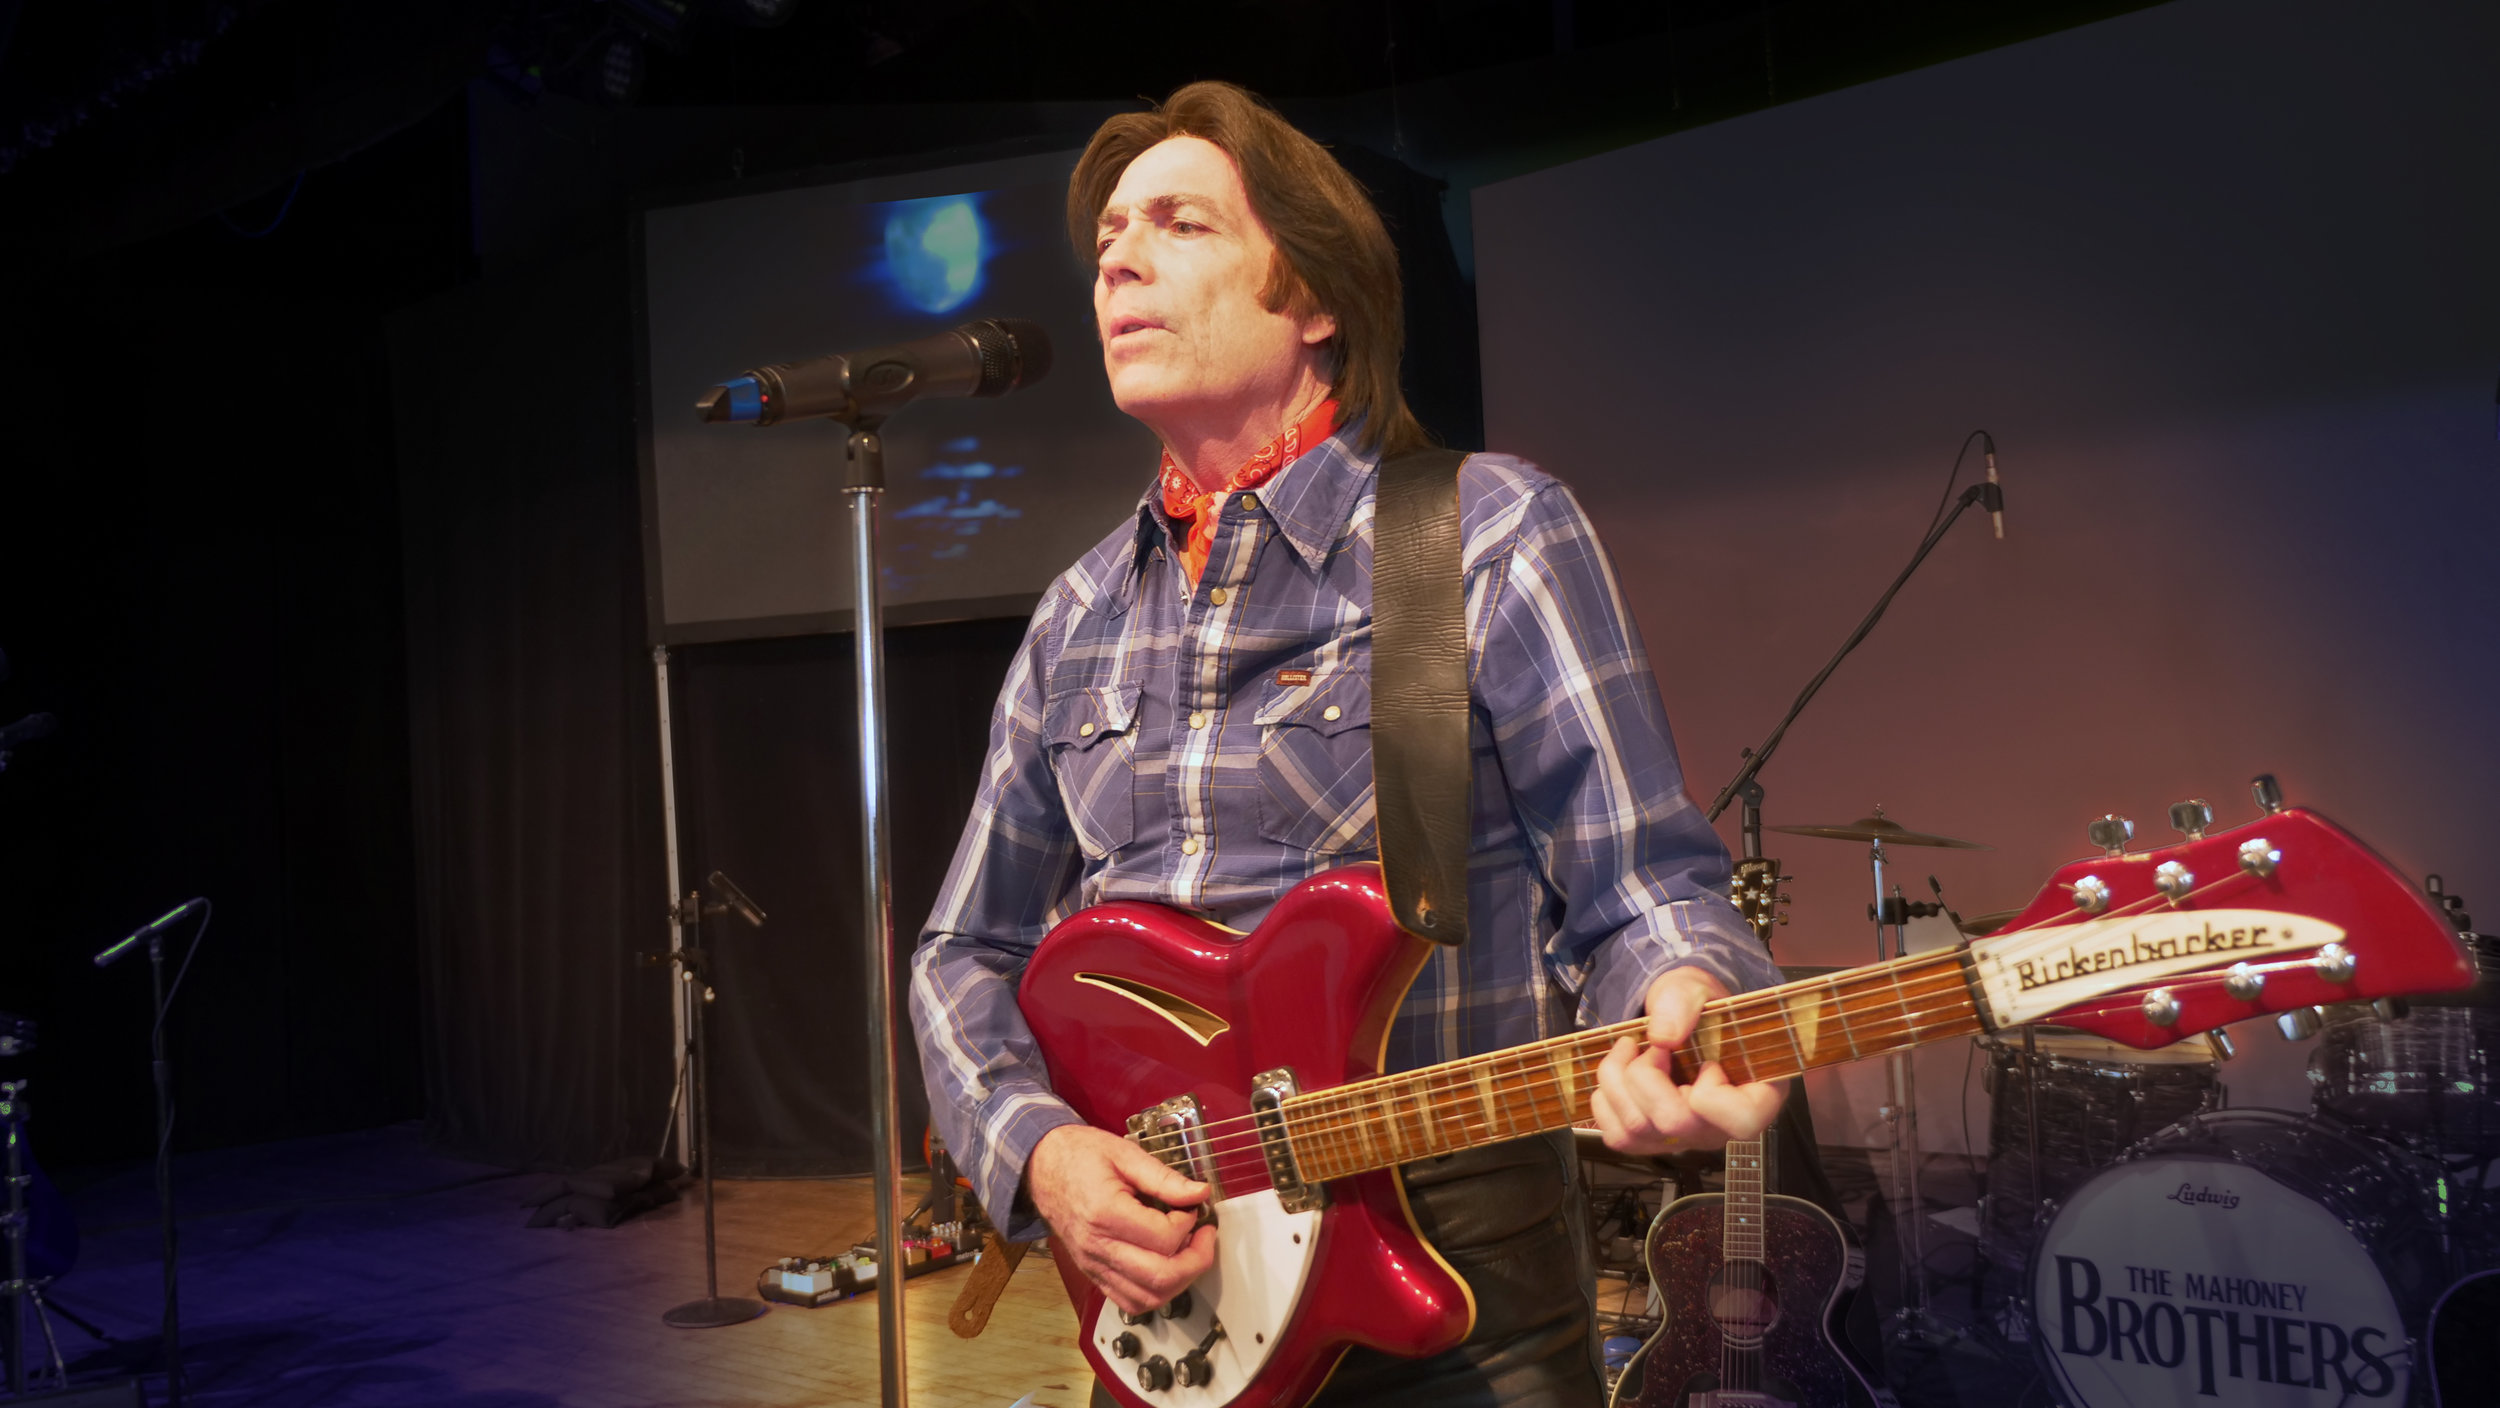 Tim Mahoney as John Fogerty (Creedence Clearwater Revival)